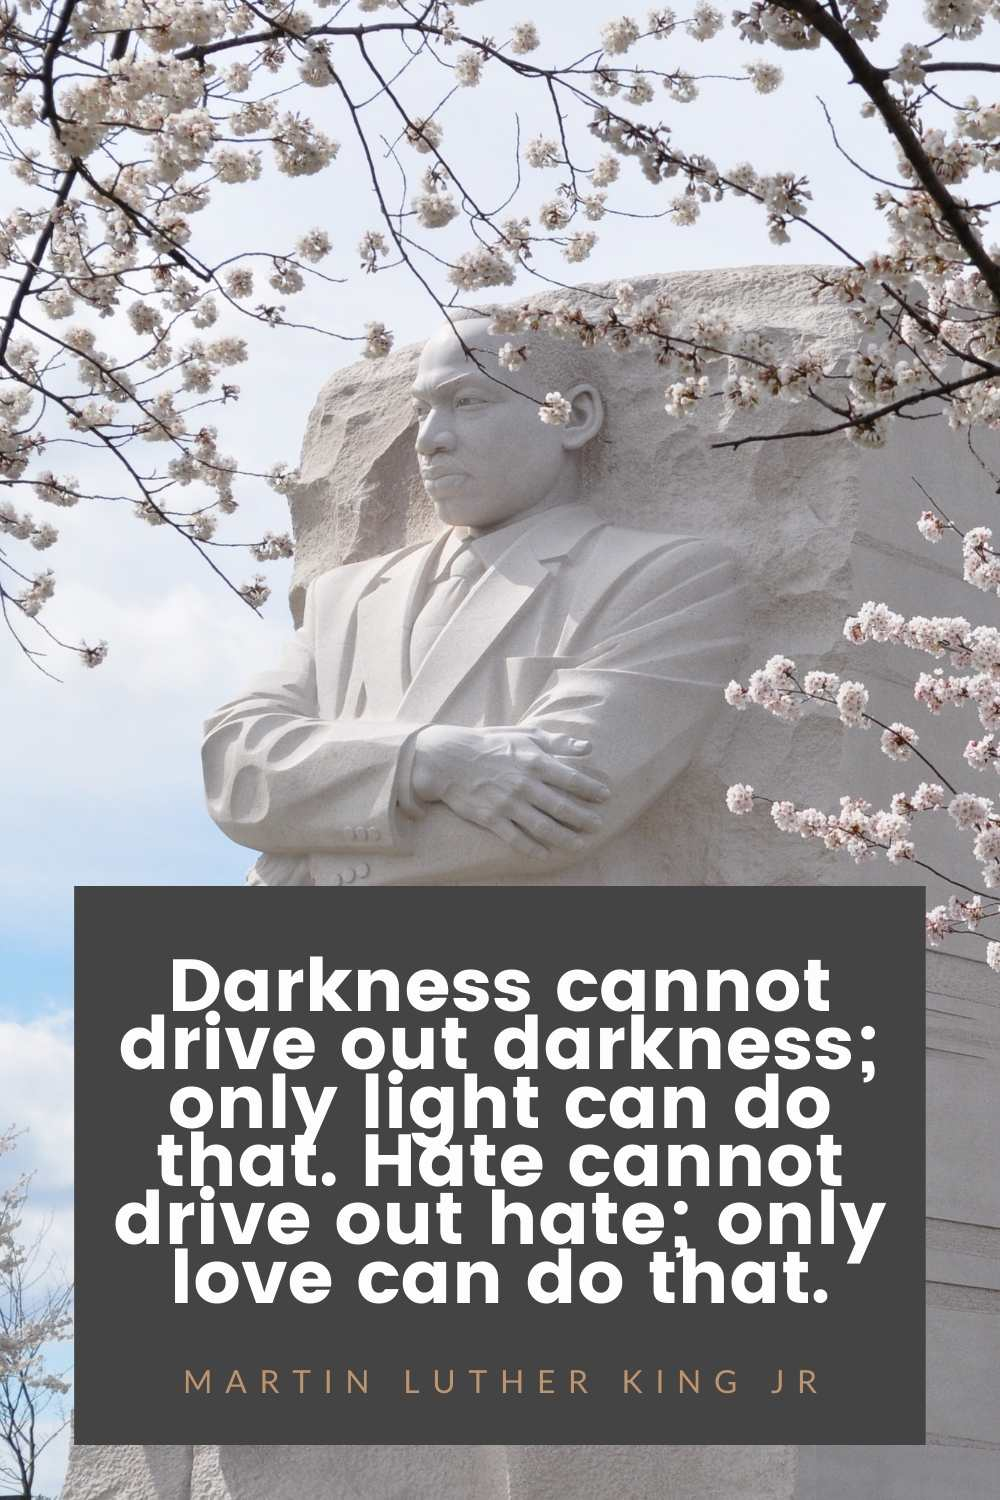 Darkness cannot drive out darkness; only light can do that. Hate cannot drive out hate; only love can do that. martin luther king jr quote